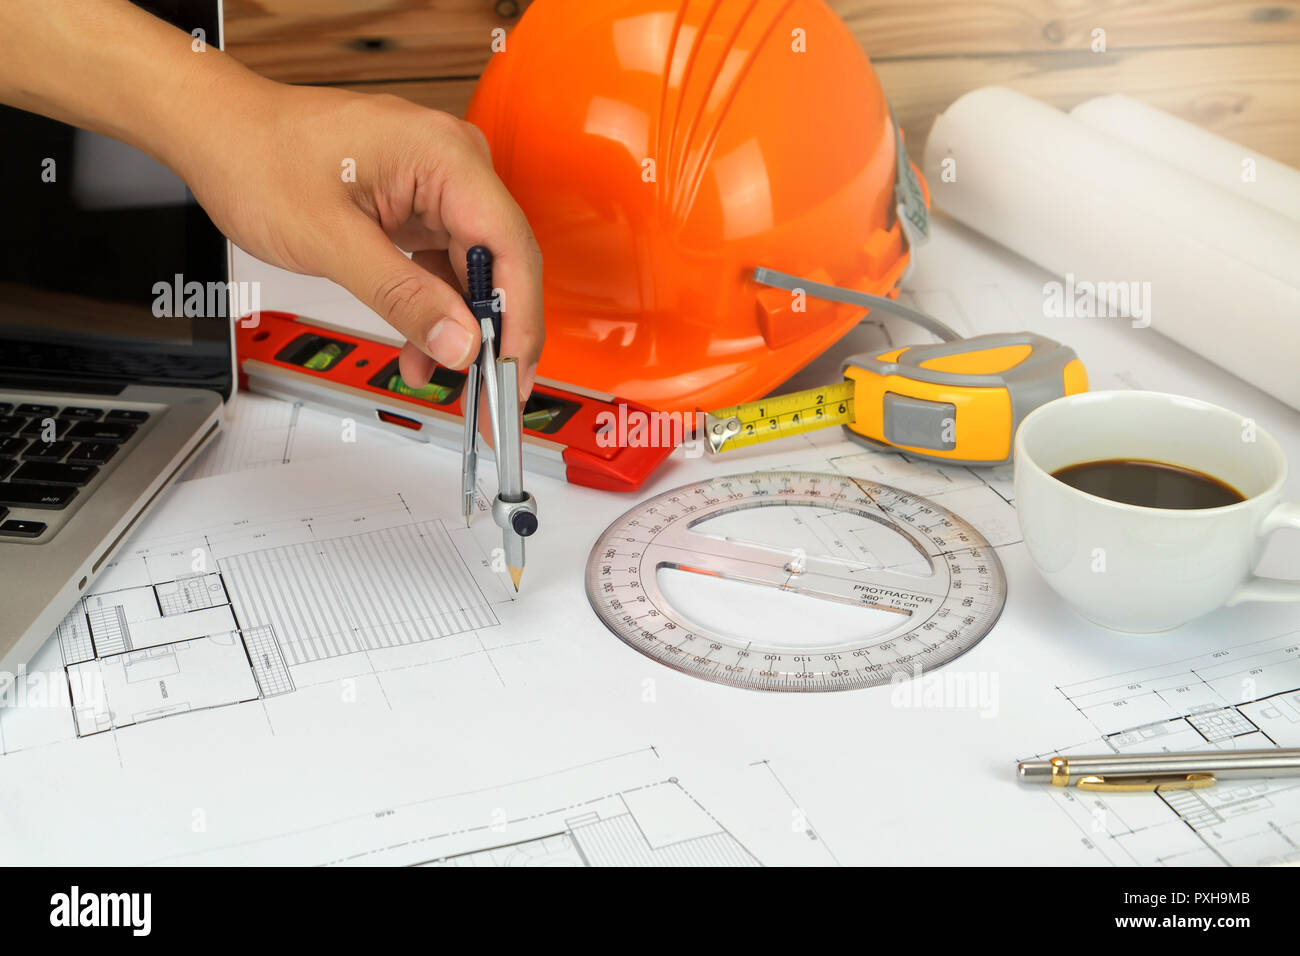 An architect or engineer working on blueprint, An architect or engineer uses a divider gauge on the blueprint., architectural concept - Stock Image